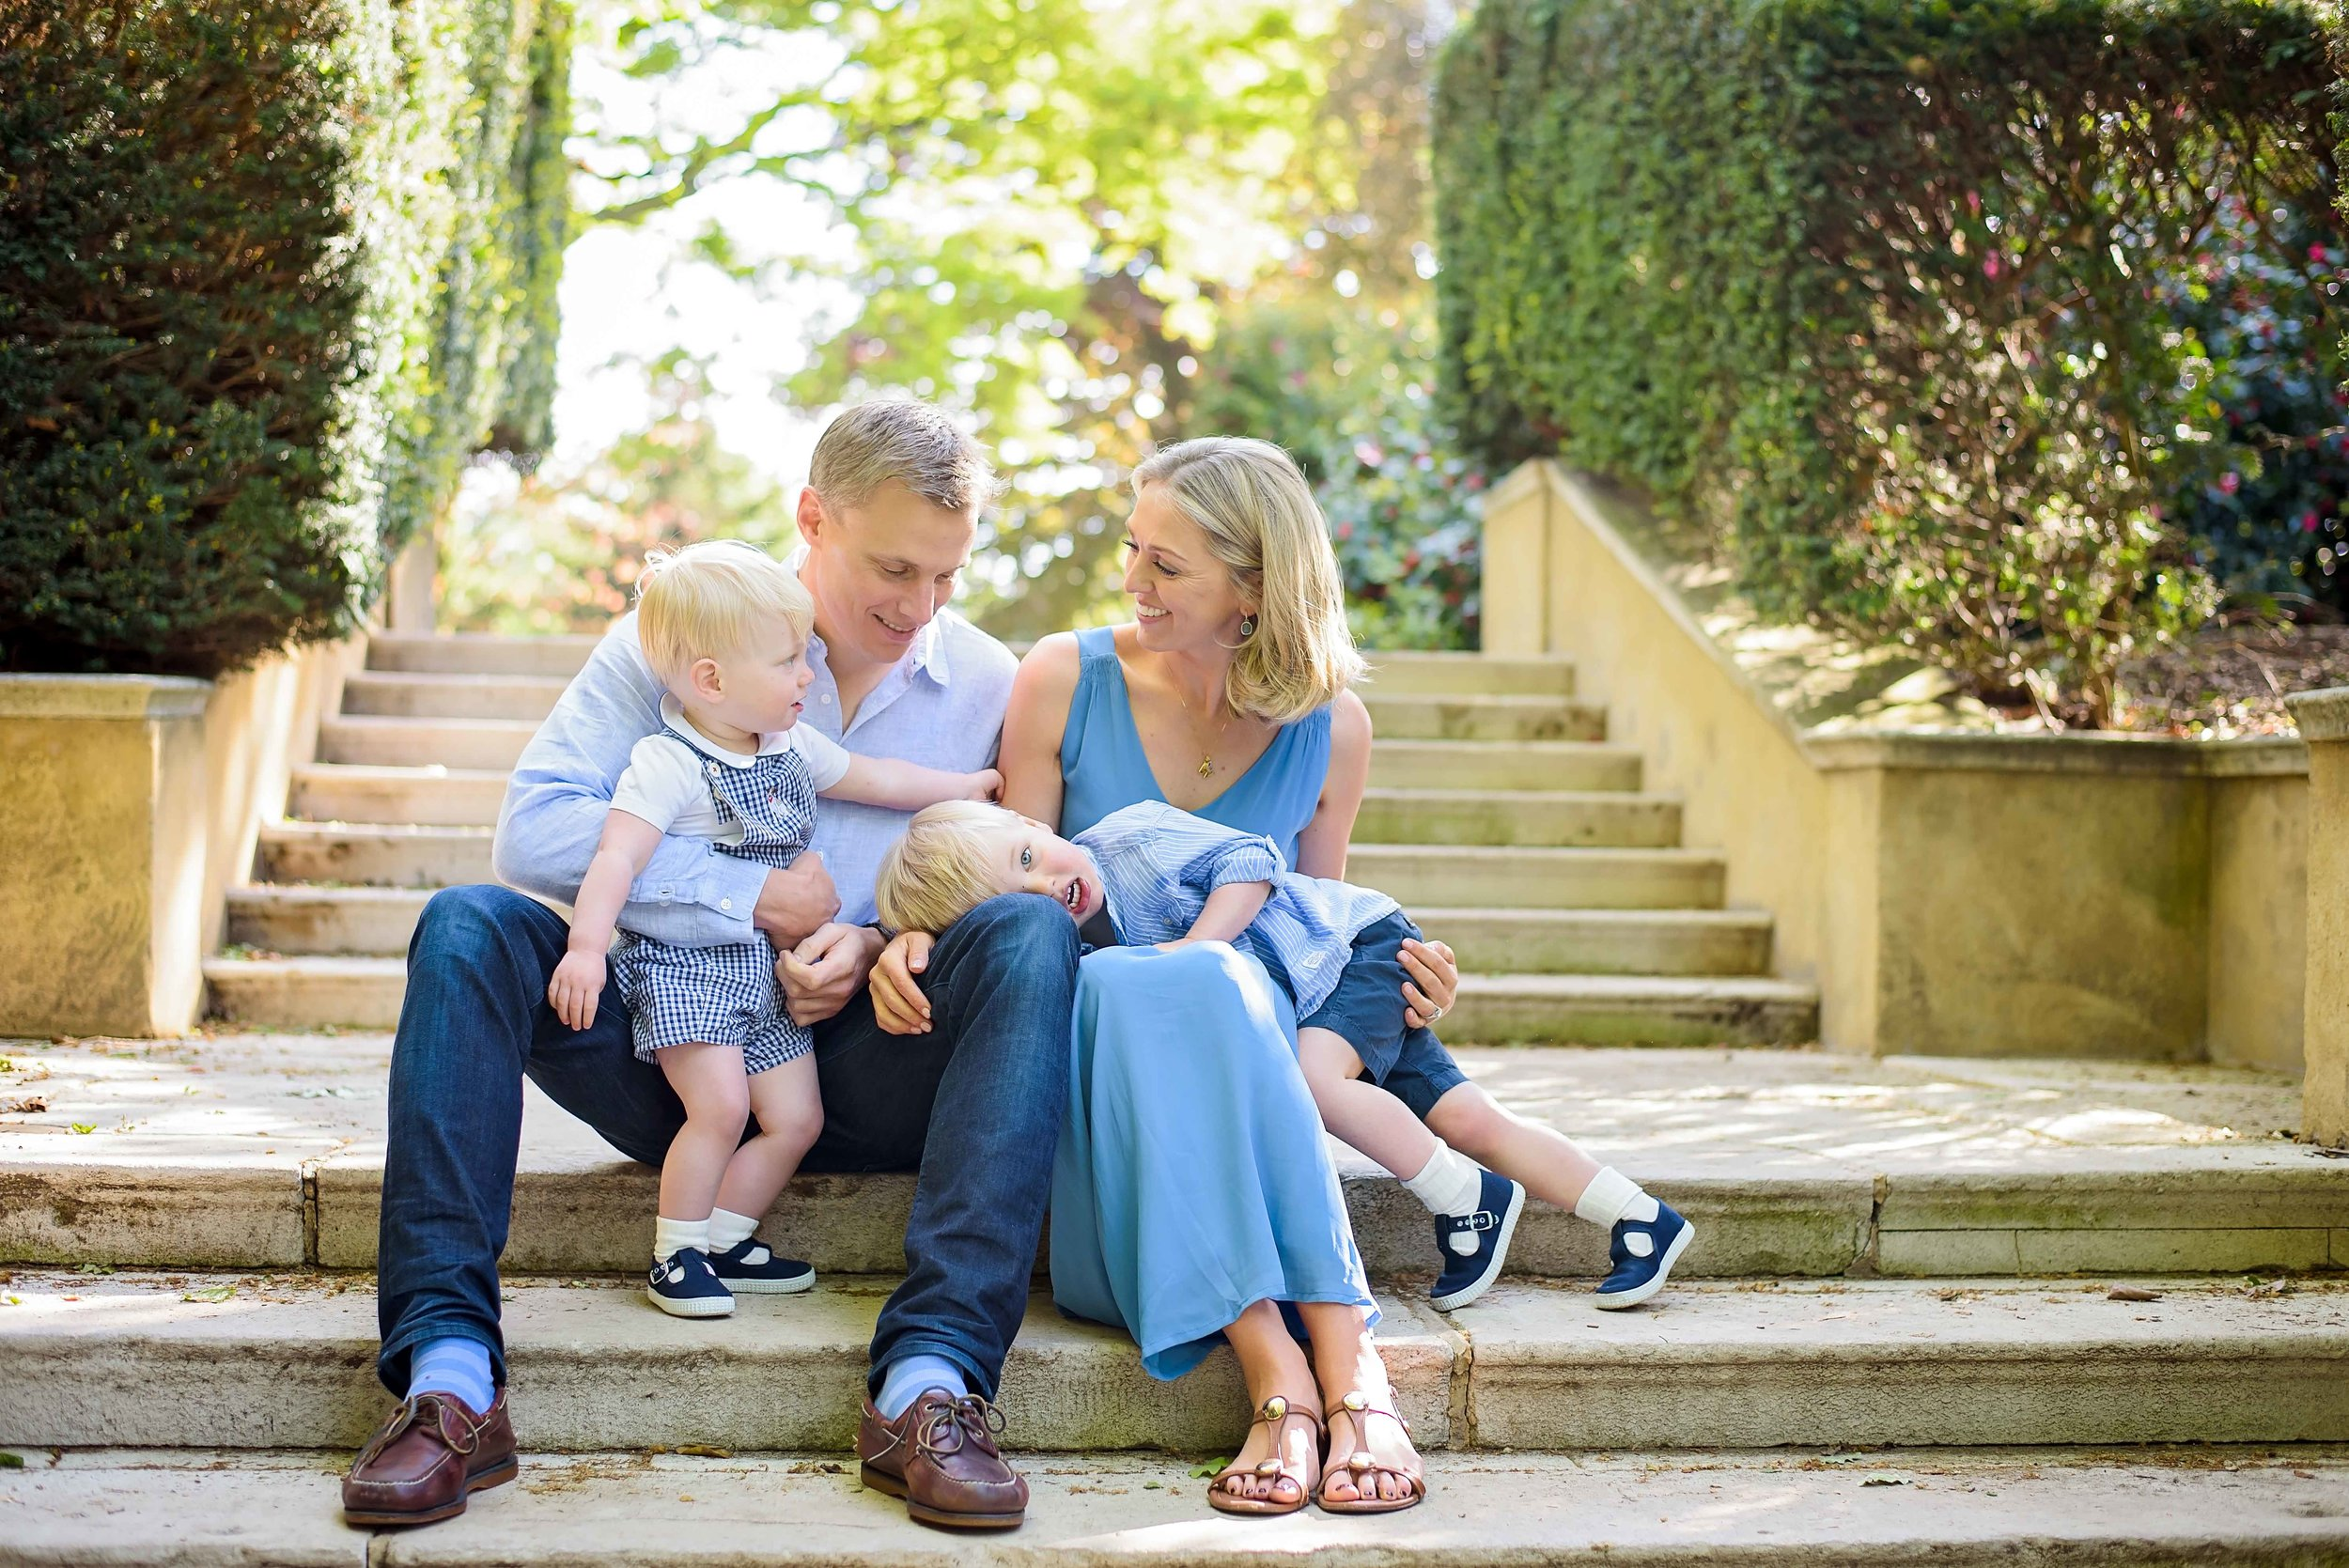 Natural outdoor family photography in London